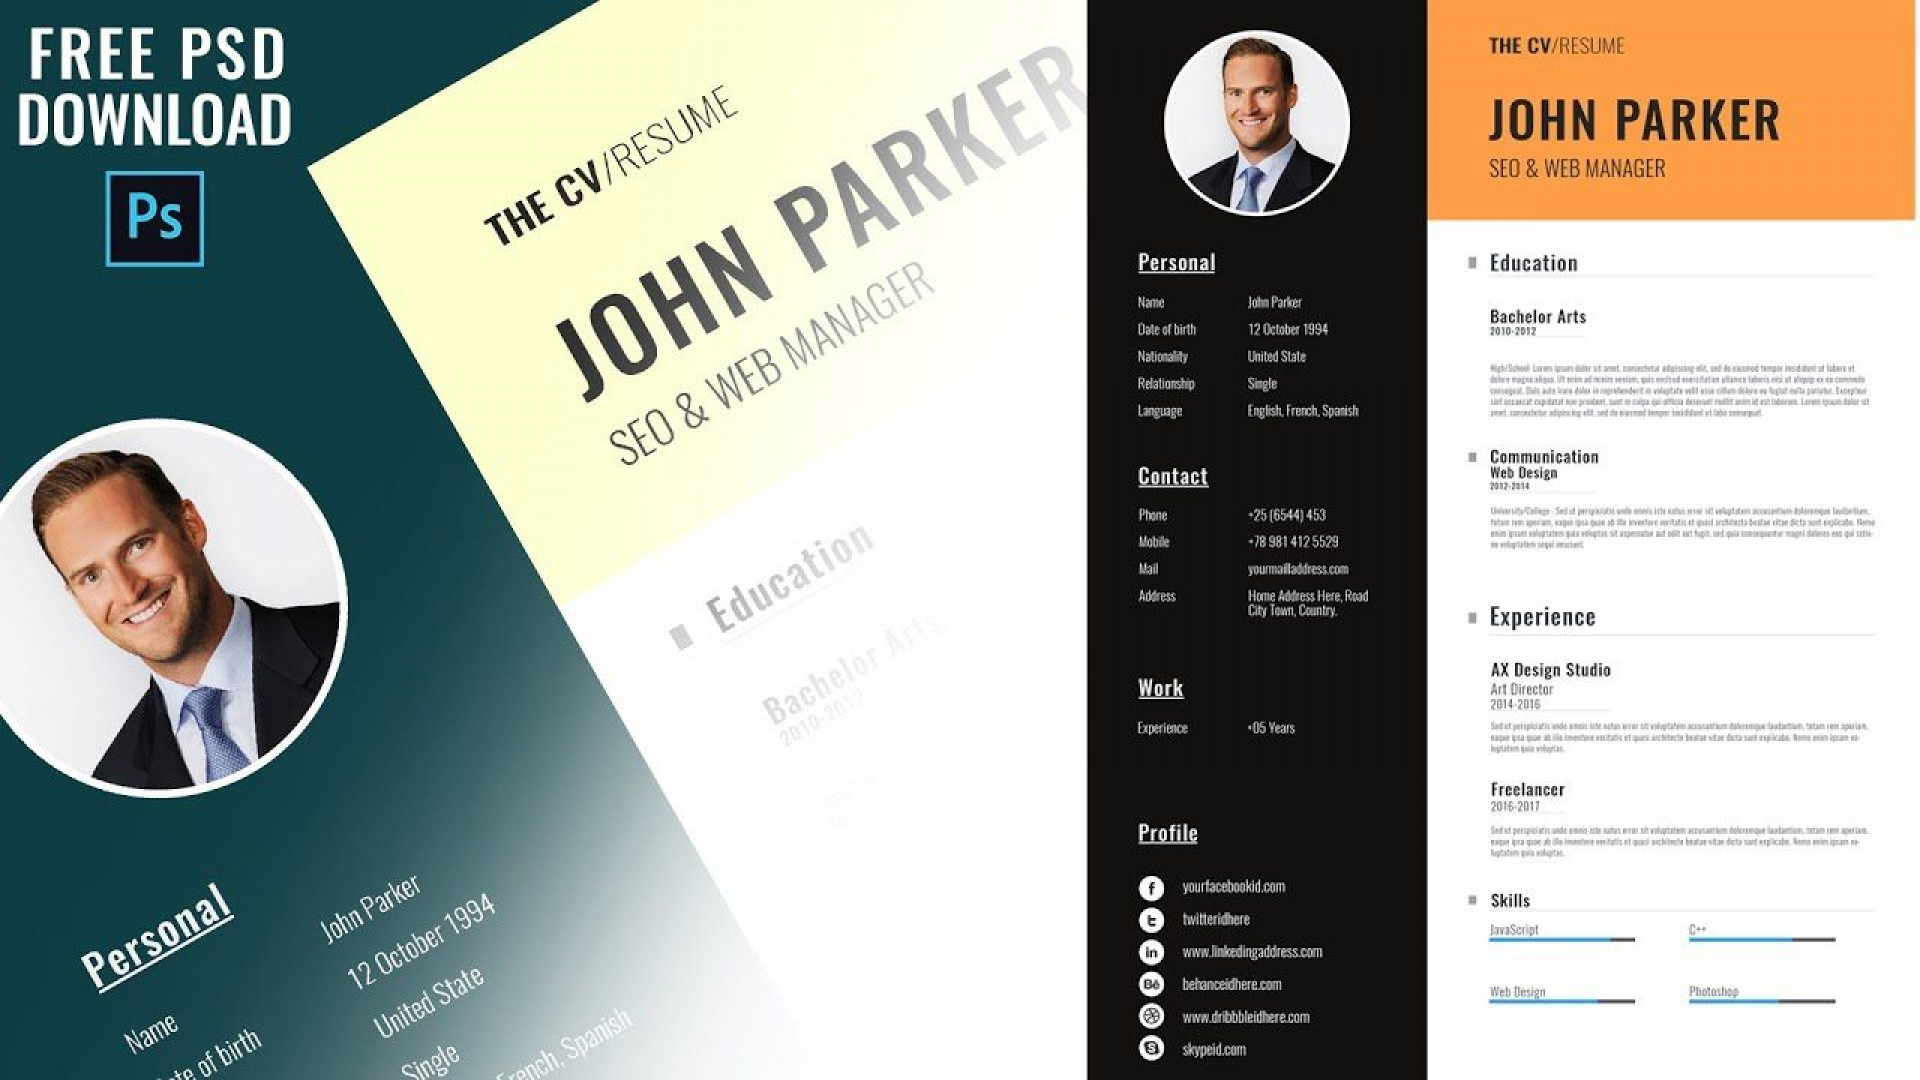 005 Wonderful Psd Cv Template Free Highest Quality  2018 Vector Photo And File Download Architect1920